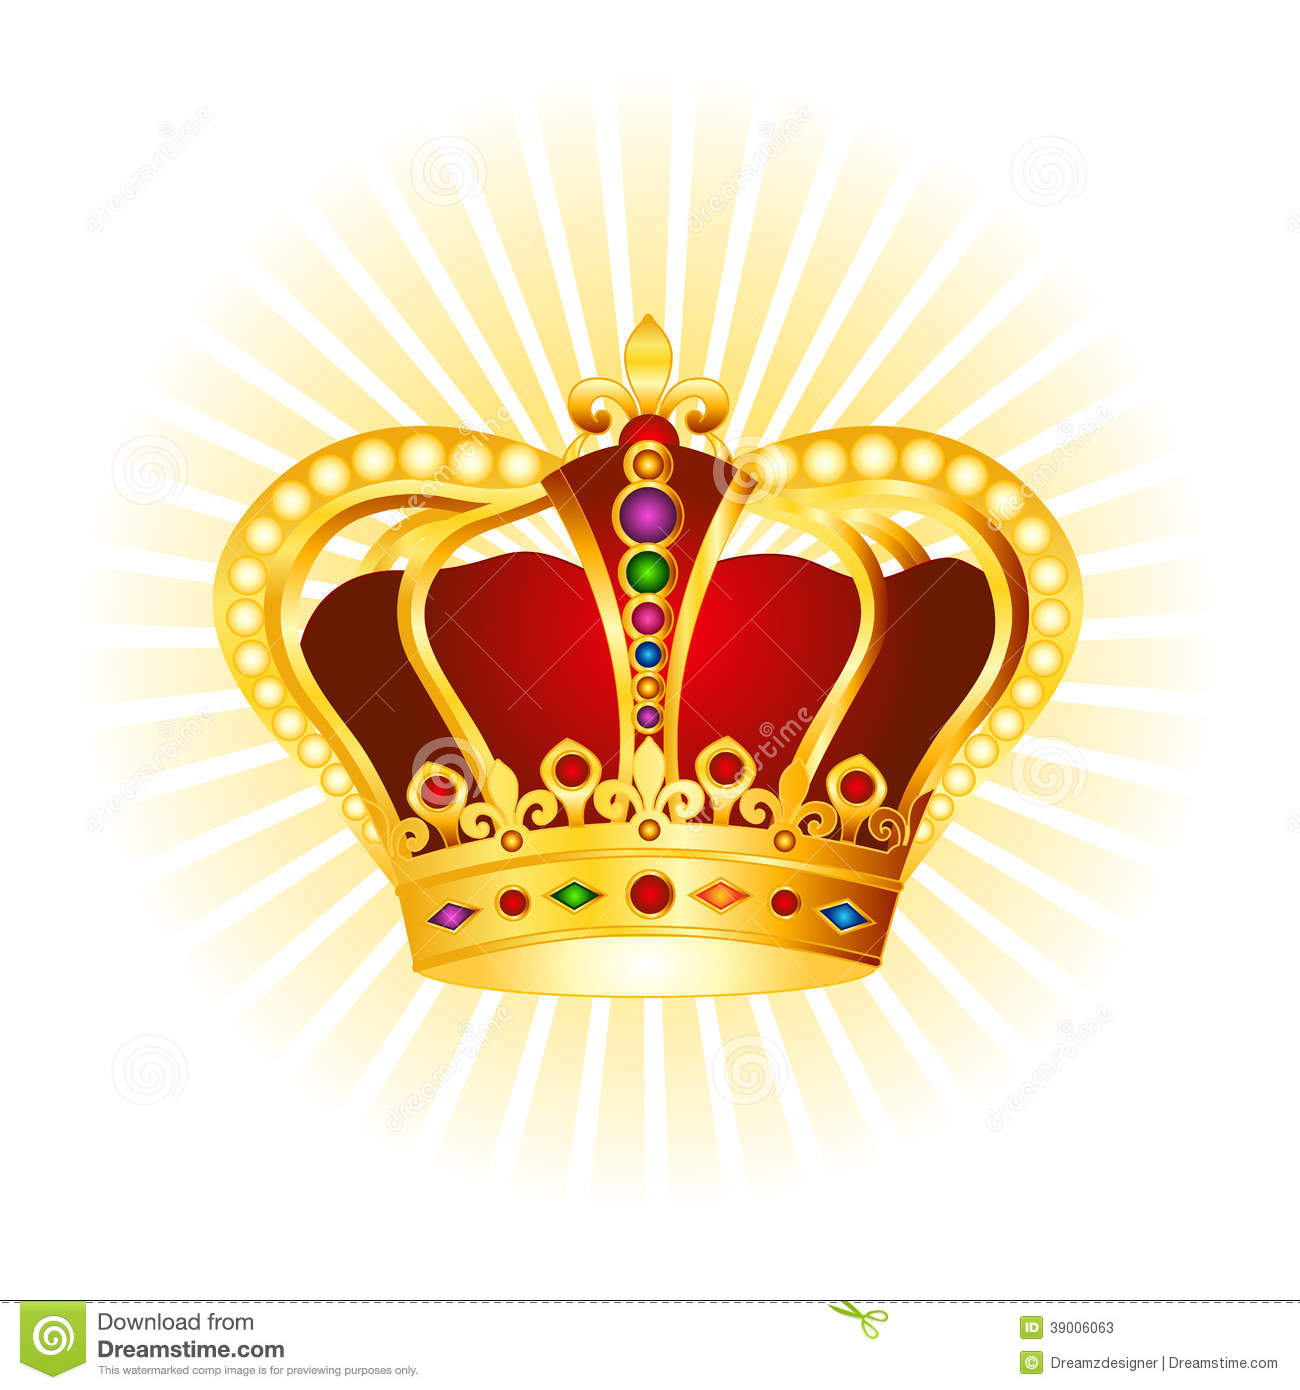 hight resolution of golden crown clipart on glowing background